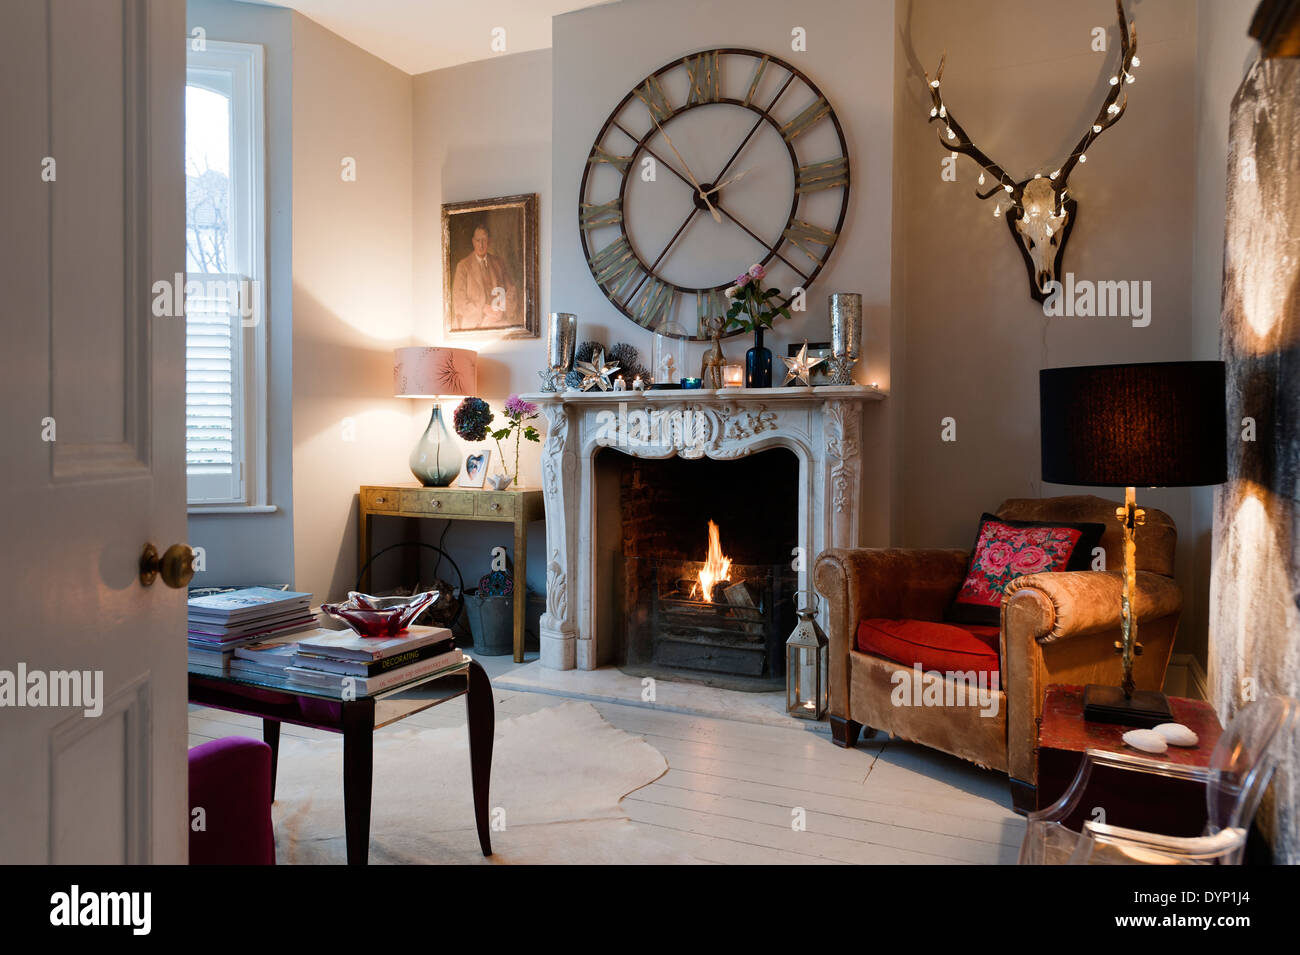 A Graham and Green 'Steeple Wall Clock' above an ornate carved marble fireplace in a living room with a vintage leather armchair - Stock Image